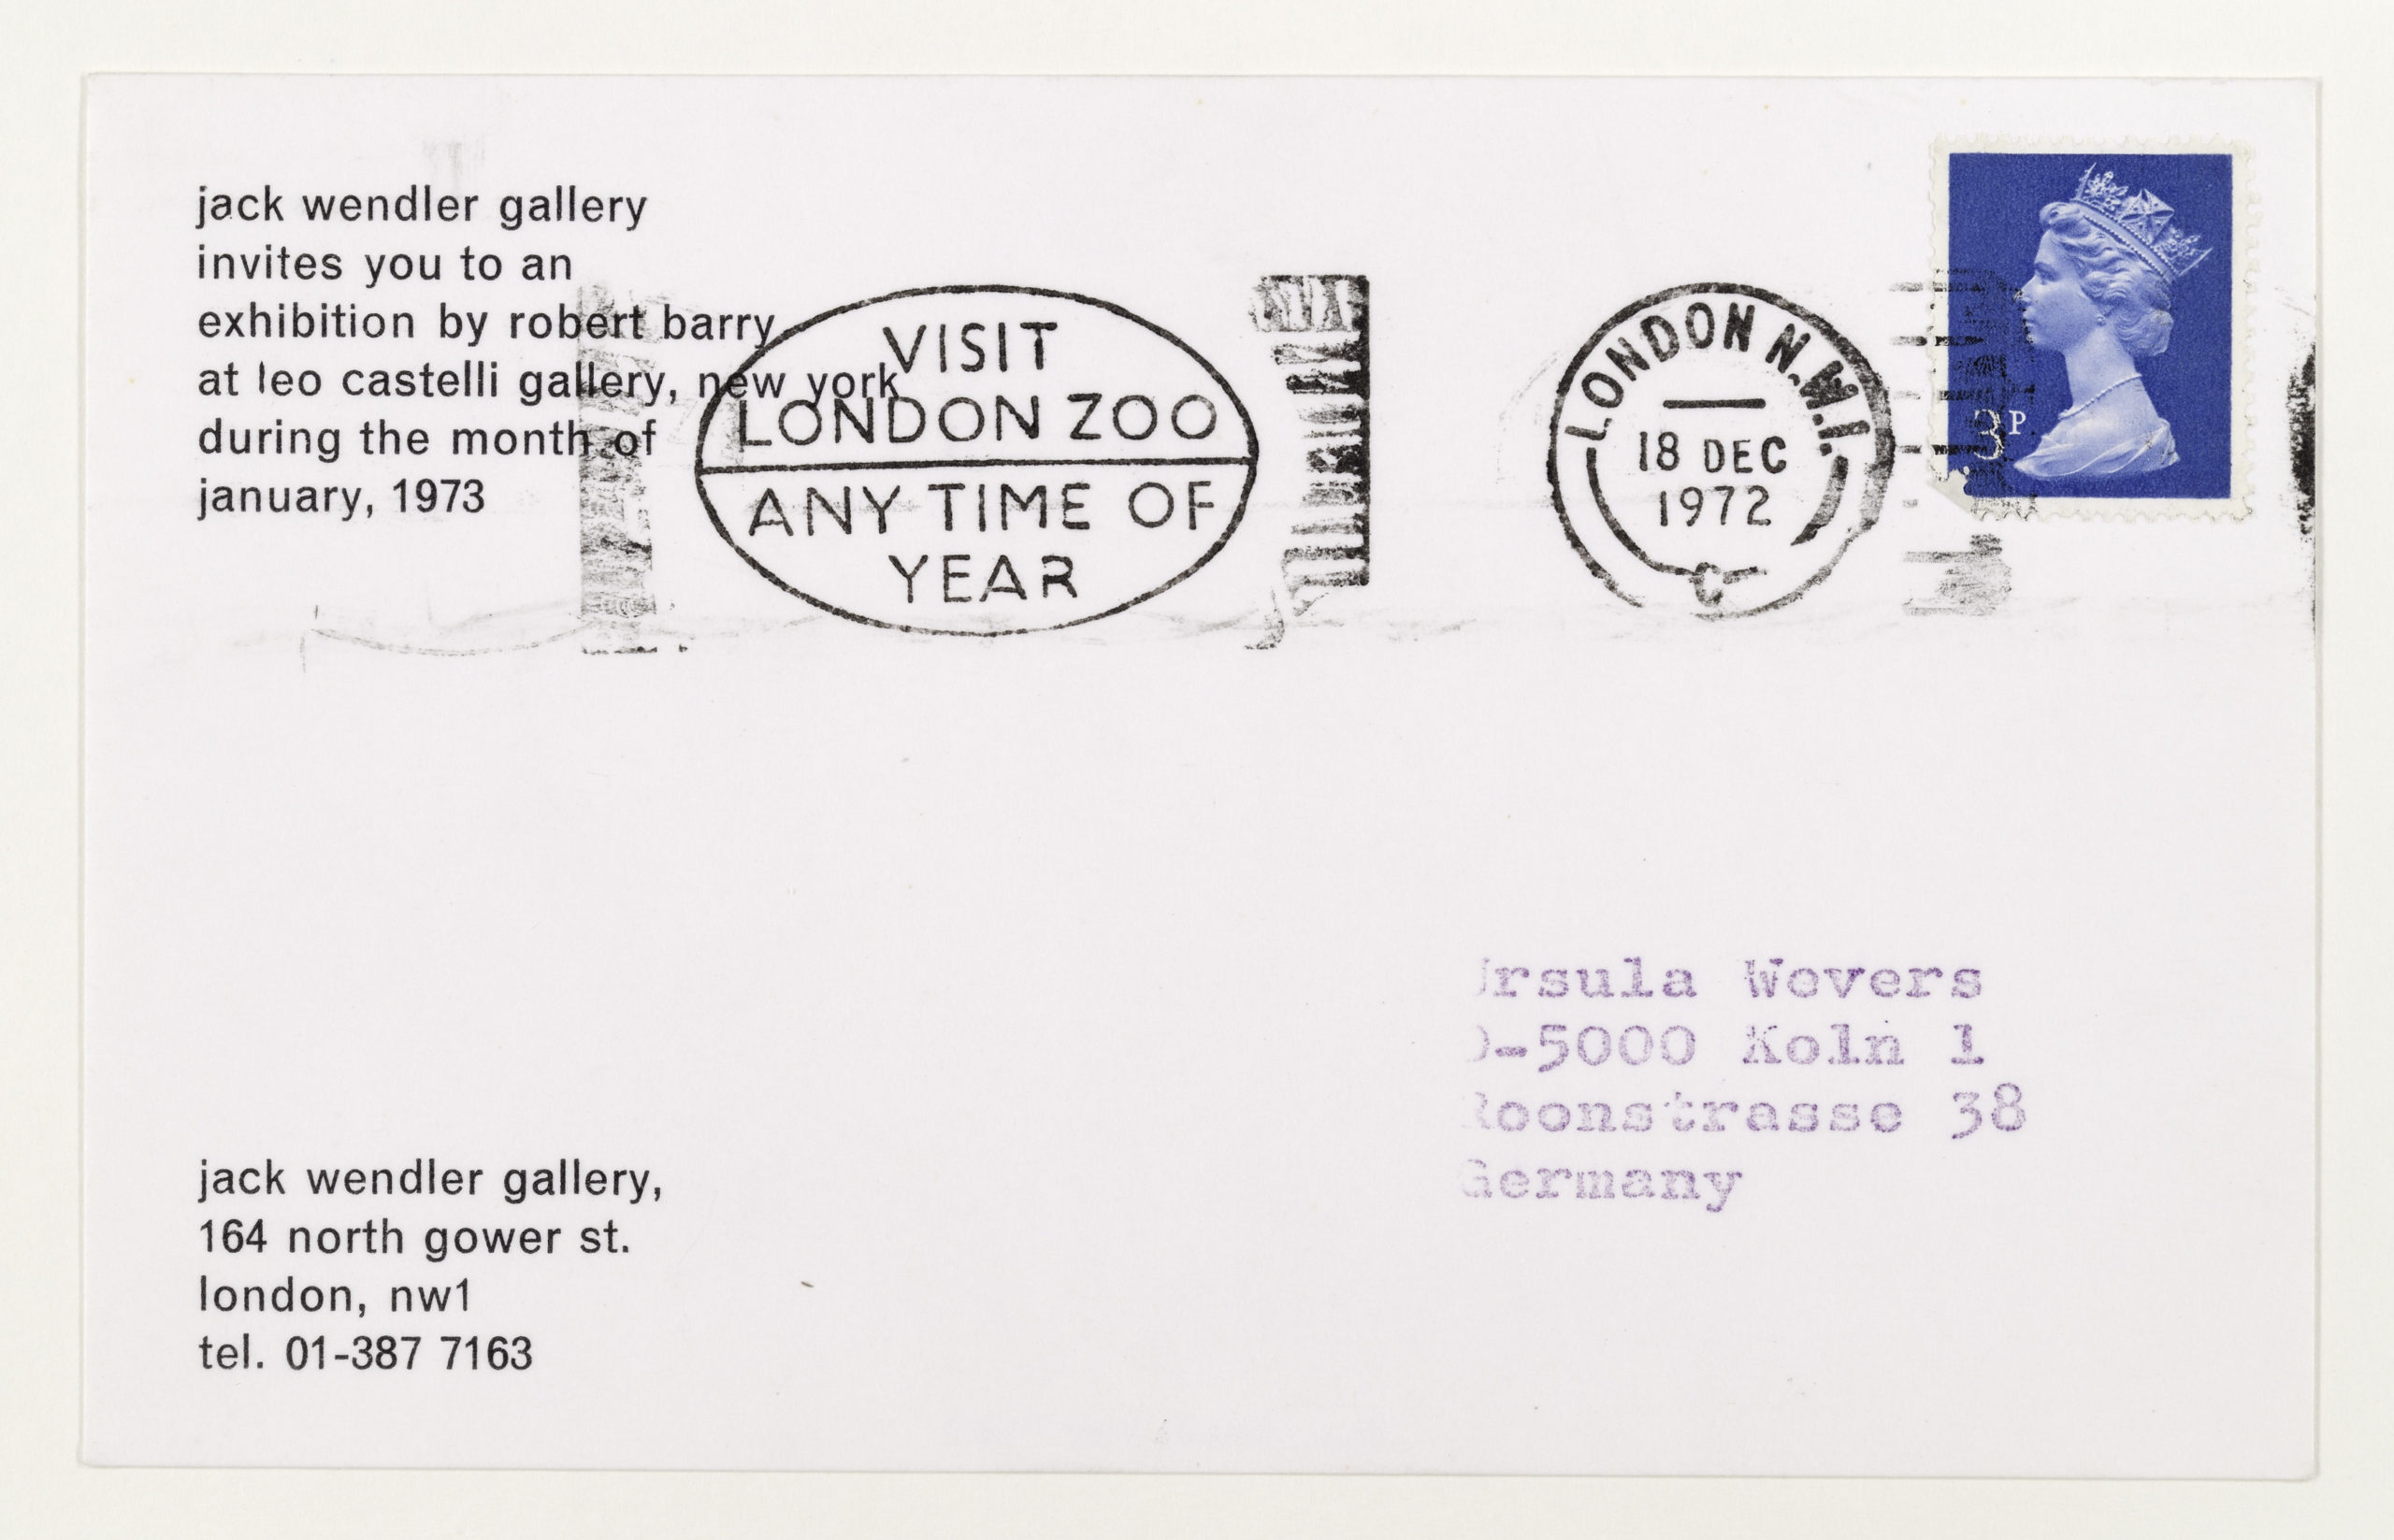 Robert Barry, Invitation Project, Jack Wendler, London invites to Leo Castelli, New York January 1973 (Invitation); Sammlung Marzona, Kunstbibliothek – Staatliche Museen zu Berlin